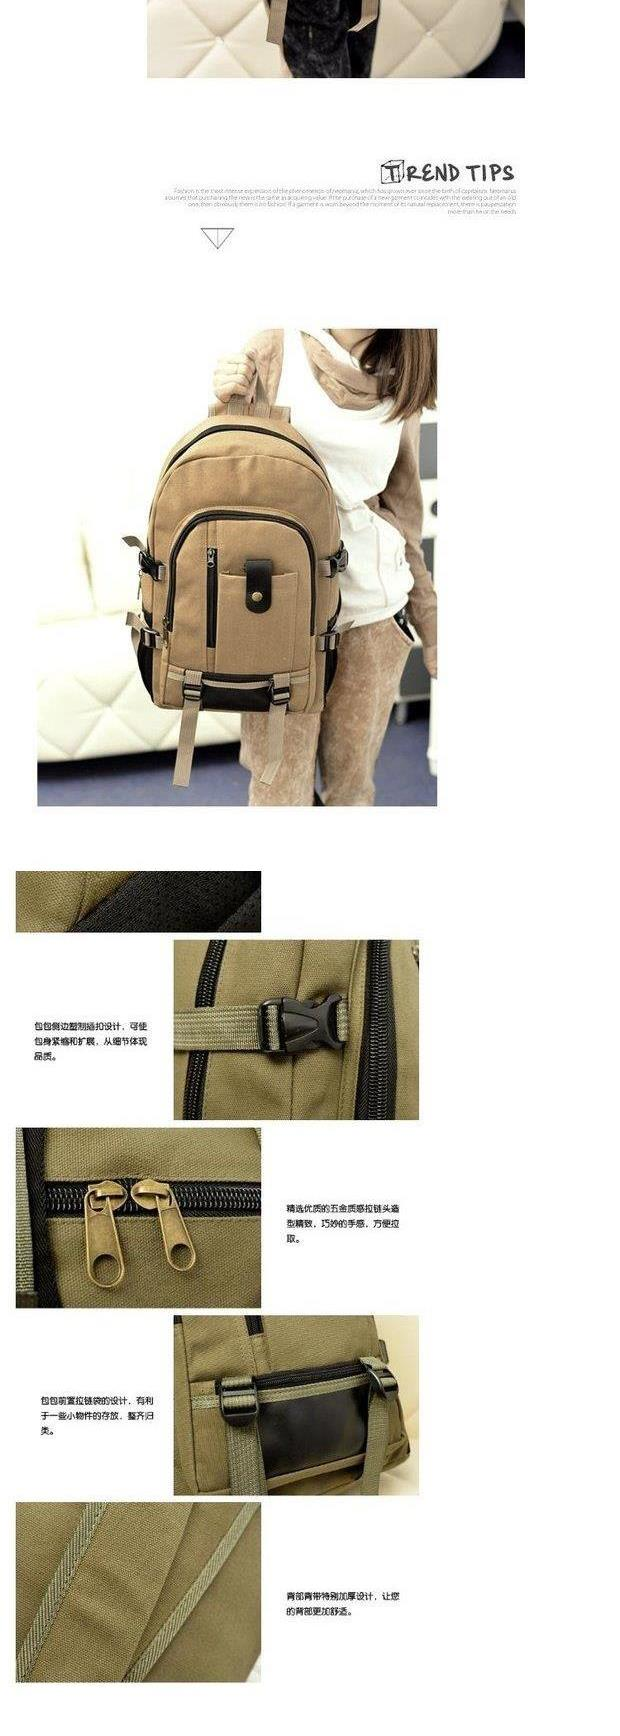 Chinese students medium-sized clothing Youth Travel Bag Backpack backpack mens fashion trend backpack soft face large capacity fabric